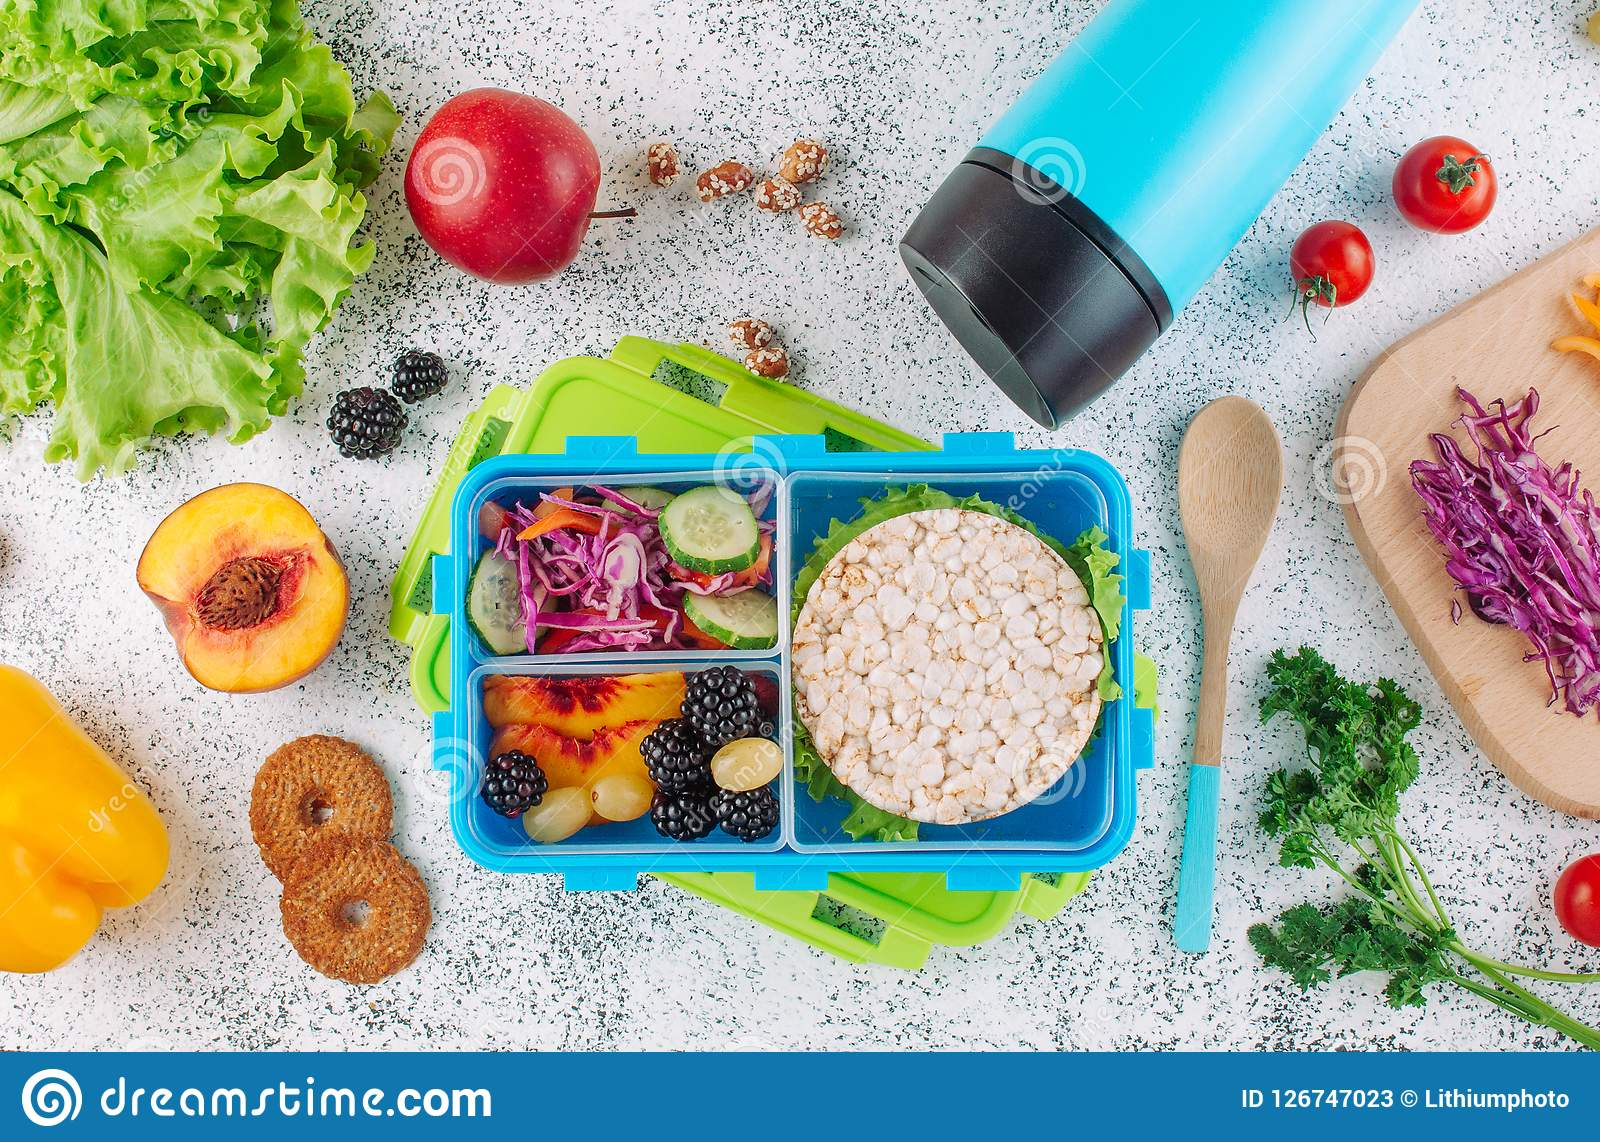 Open Lunch Box With Crispbreads Fruits And Vegetables And